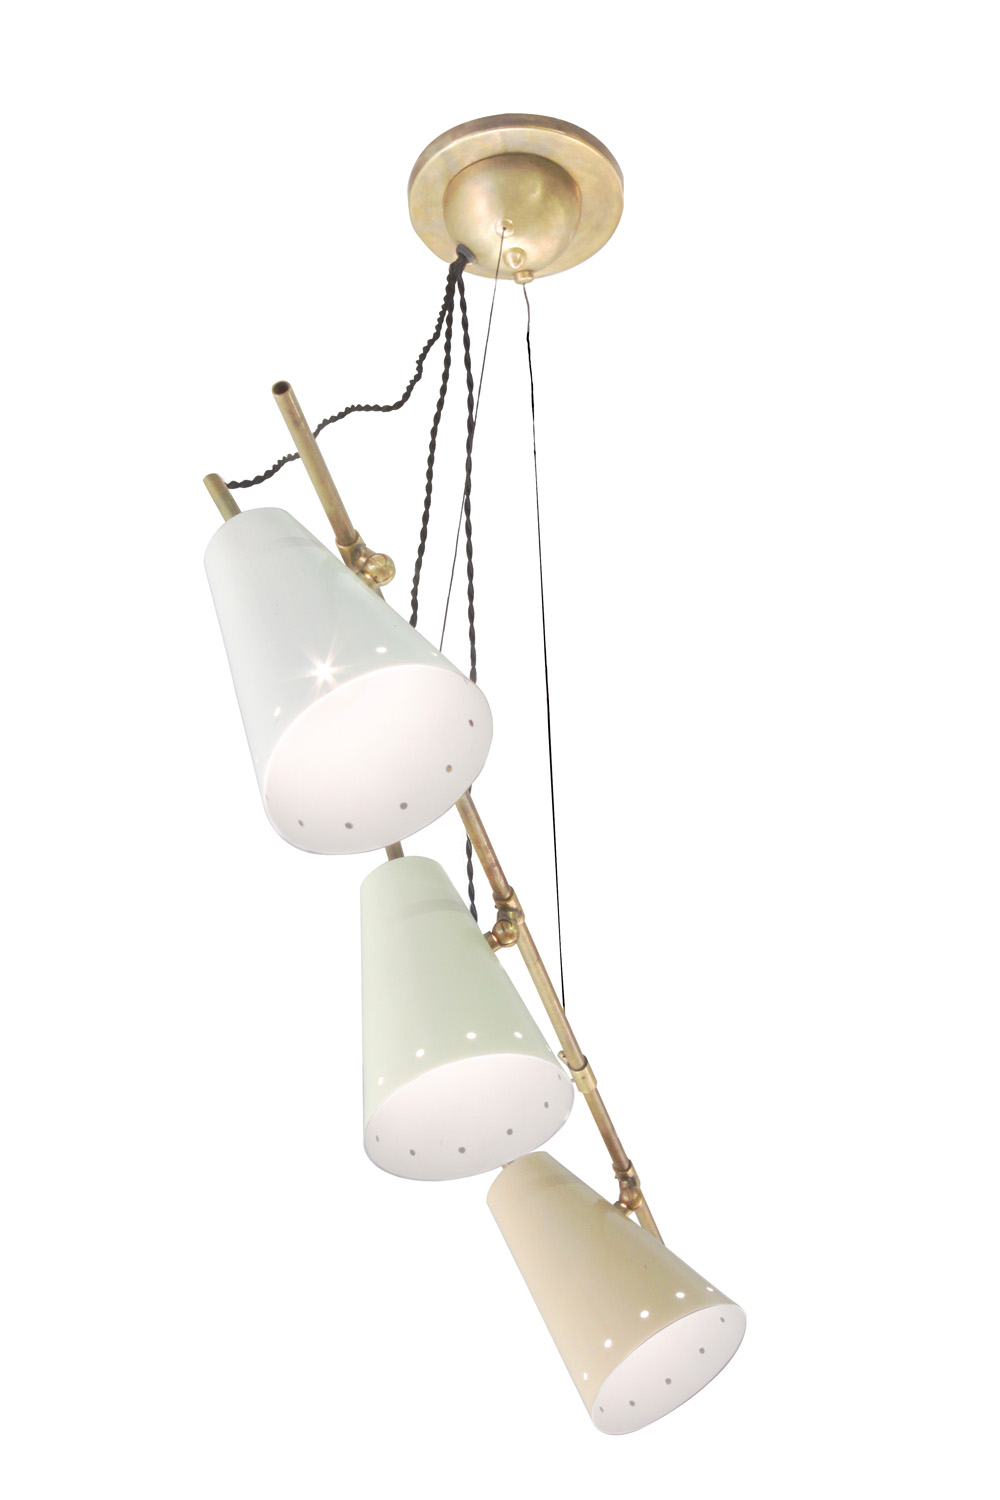 Arredoluce 55 cone shades on rod chandelier208 detail2 hires.jpg